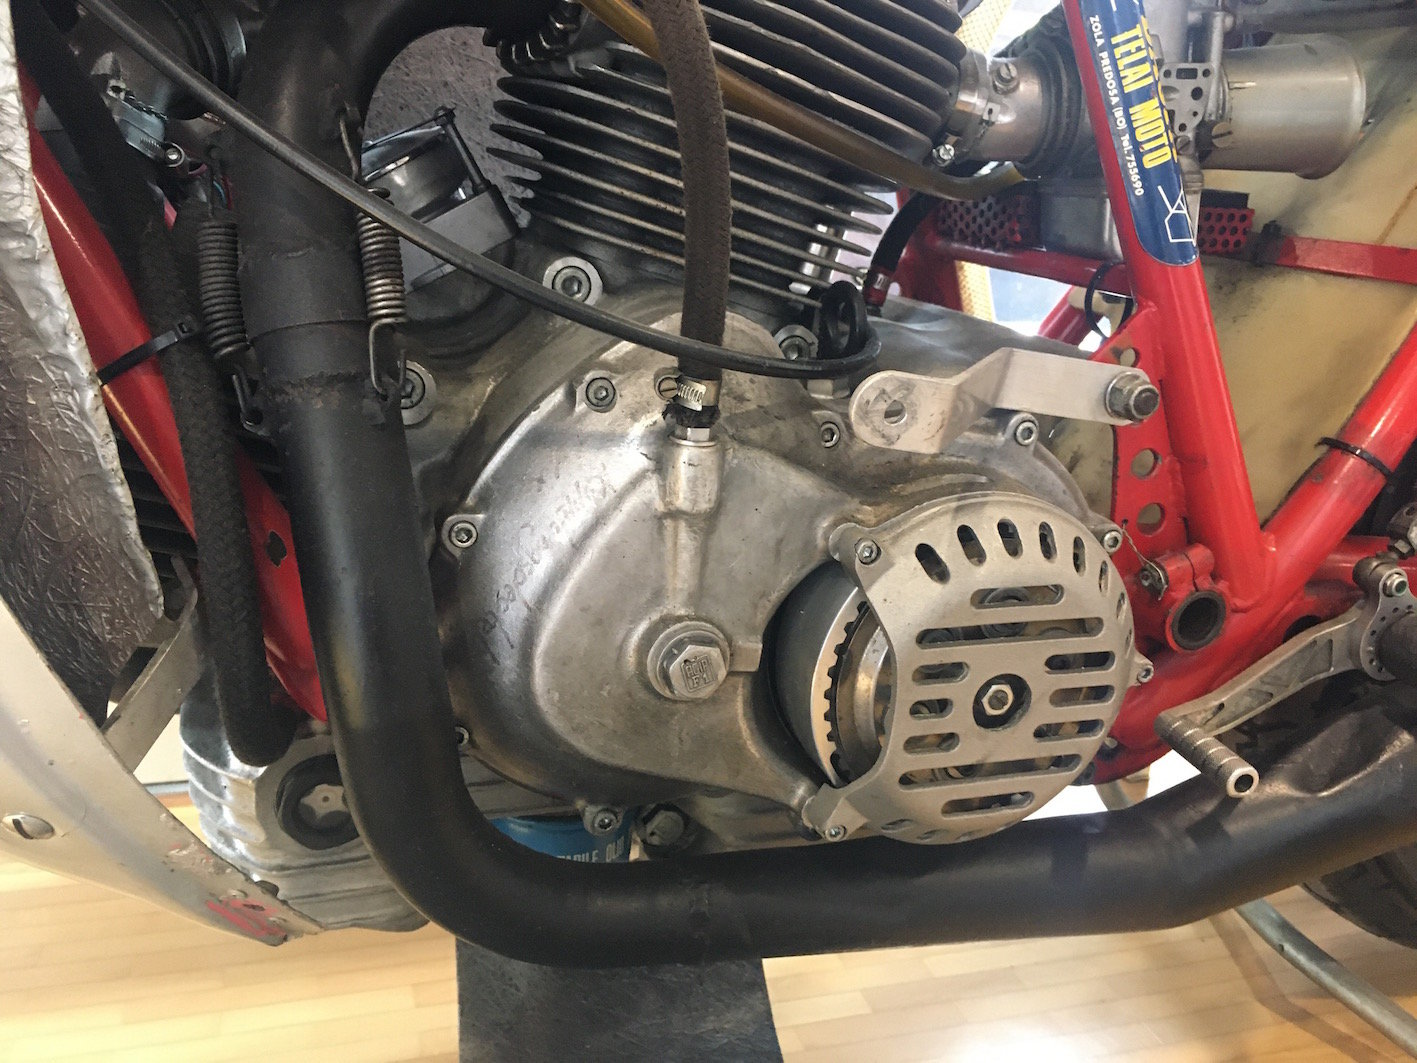 1977 Original Ducati 900 NCR Endurance racer For Sale (picture 4 of 6)